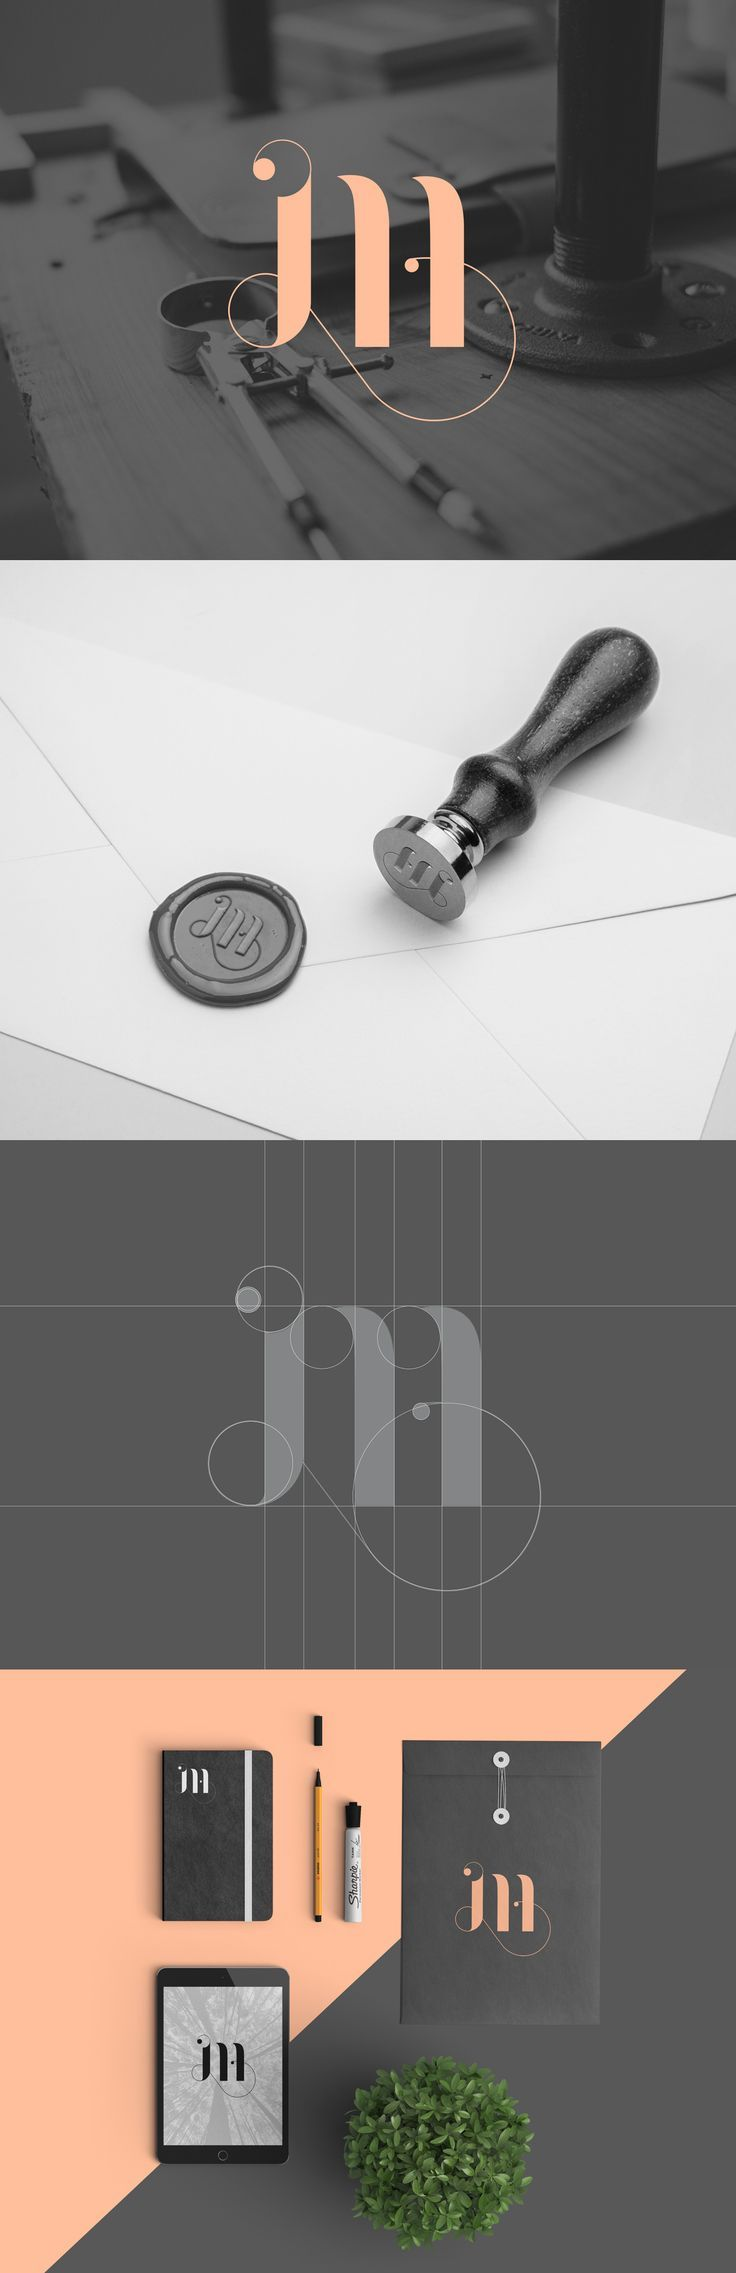 Beautiful personal brand identity calligraphy by Martina Cavalieri.  Get inspired. Try Suitcase Fusion free for 30 days: http://www.extensis.com/font-management/suitcase-fusion/. If you like UX, design, or design thinking, check out theuxblog.com